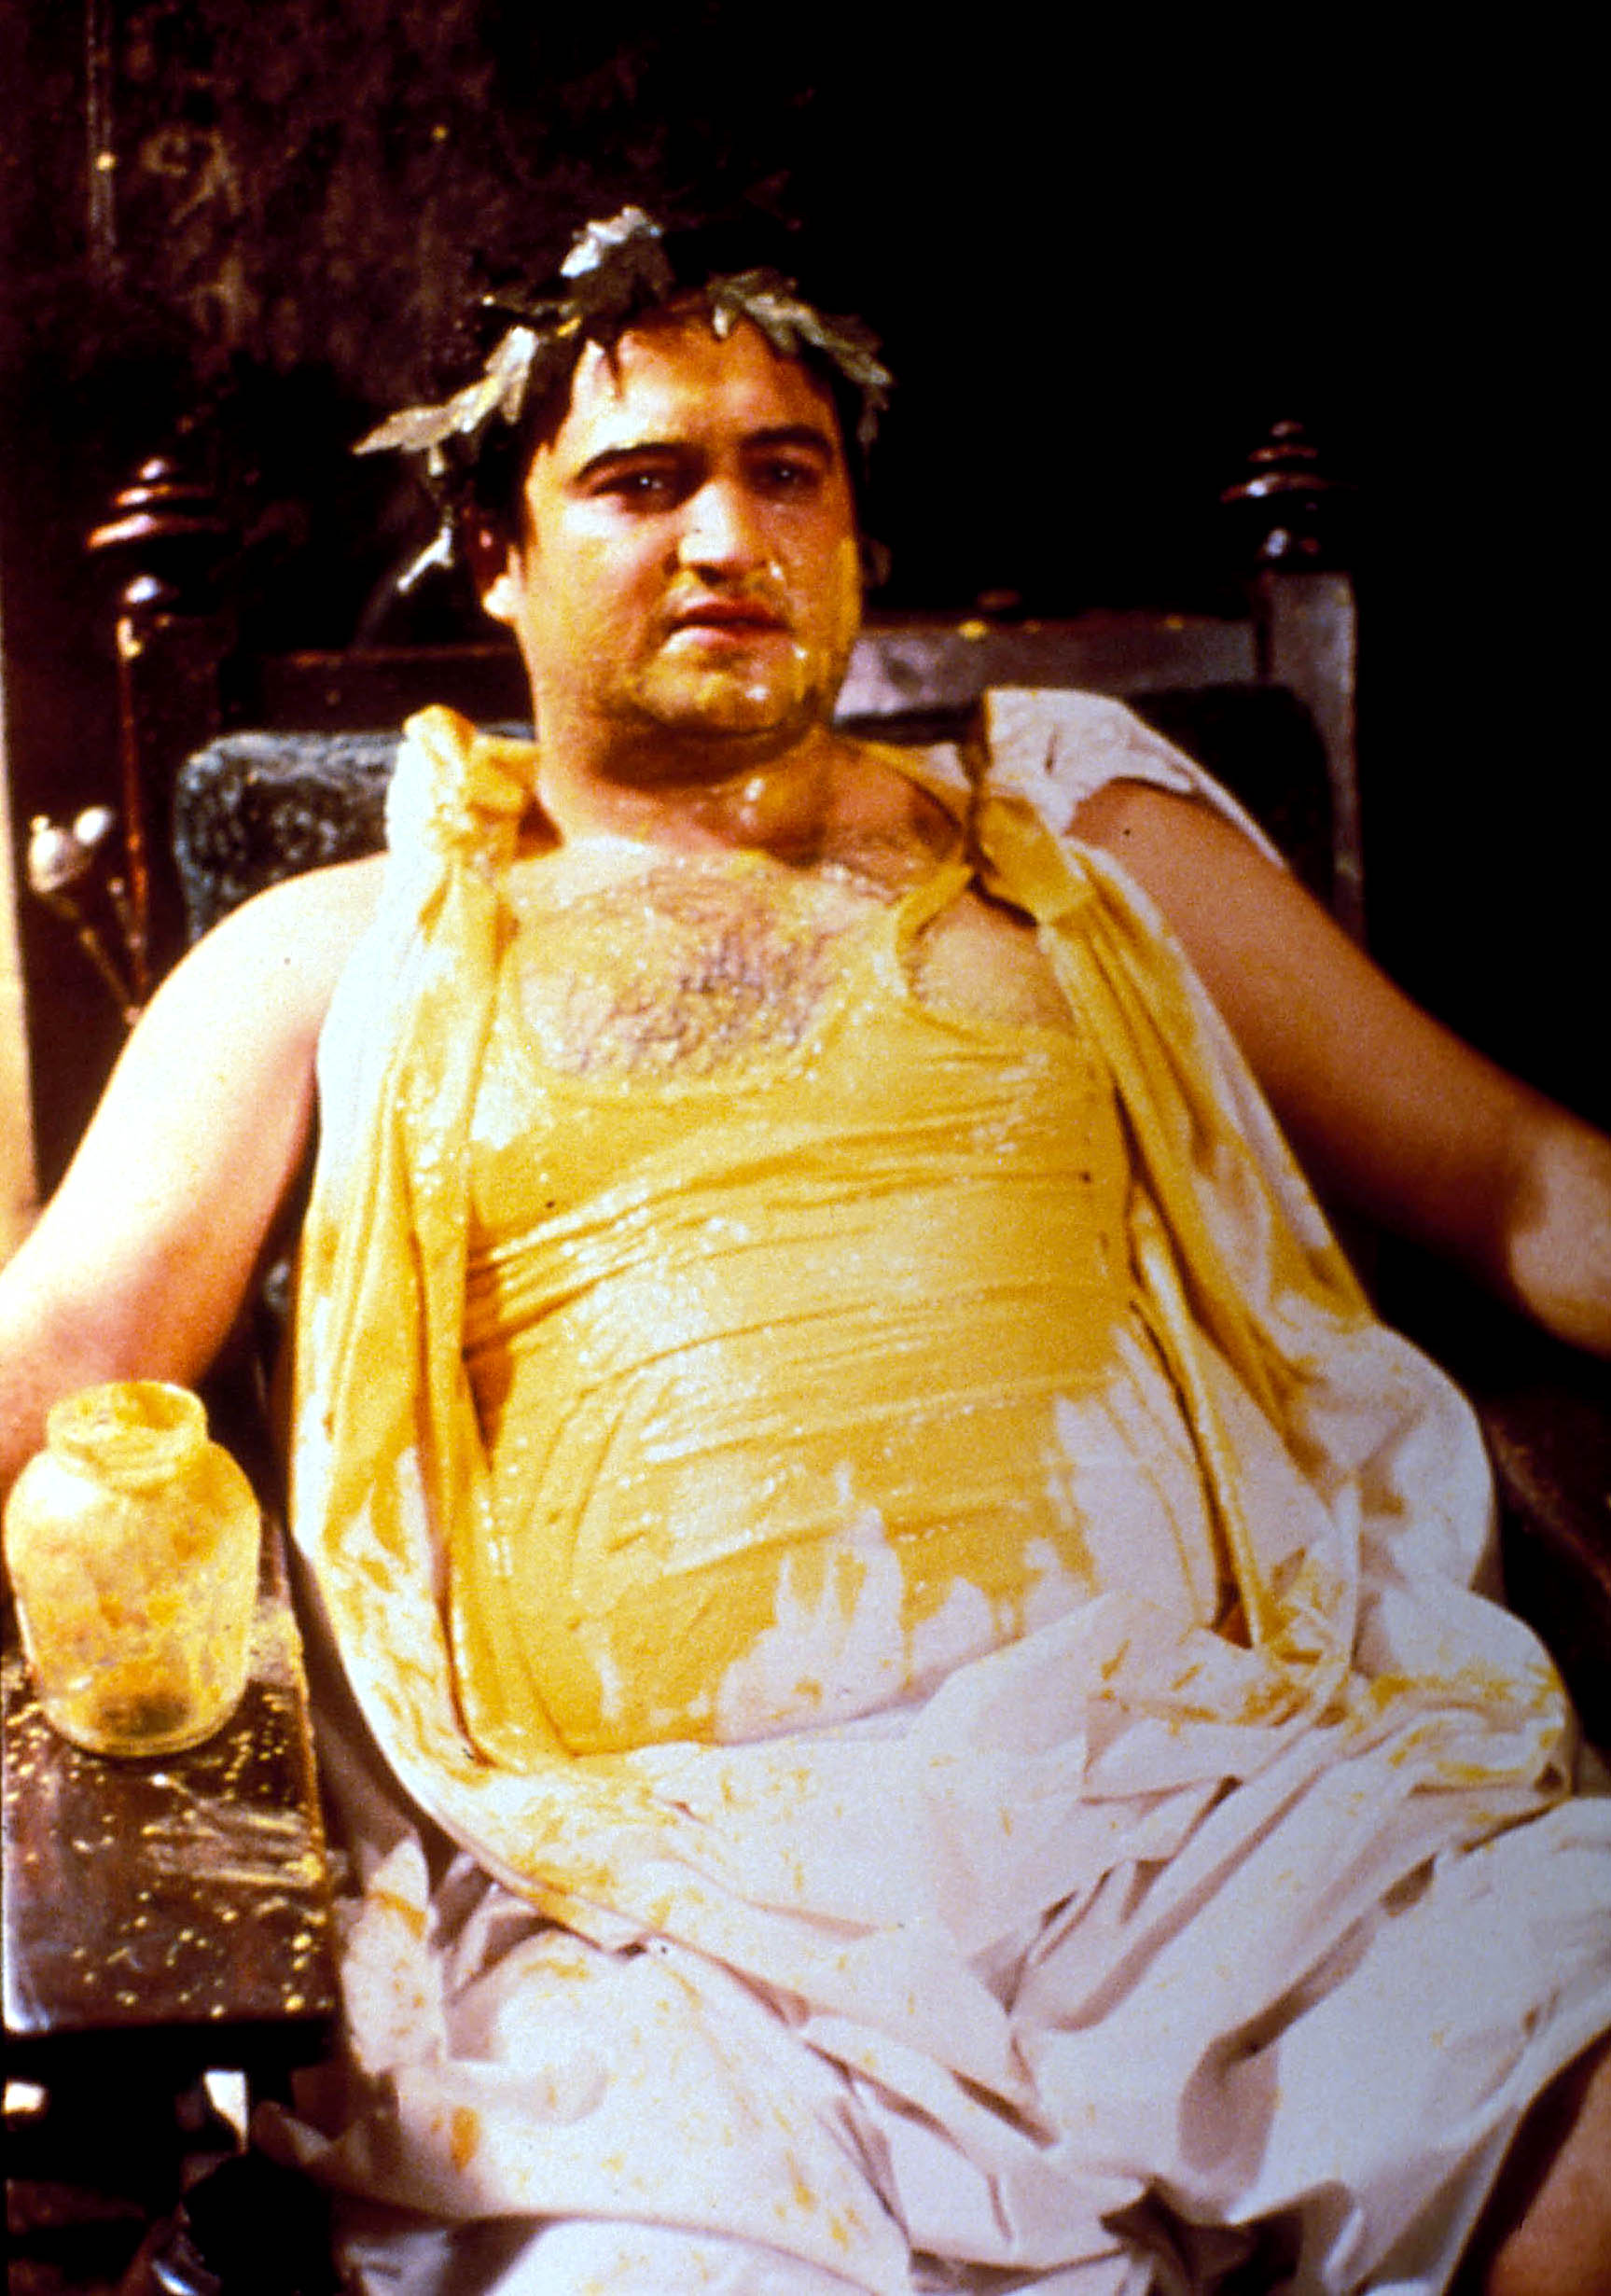 http://ww1.prweb.com/prfiles/2005/12/07/320141/JohnBelushi..JPG